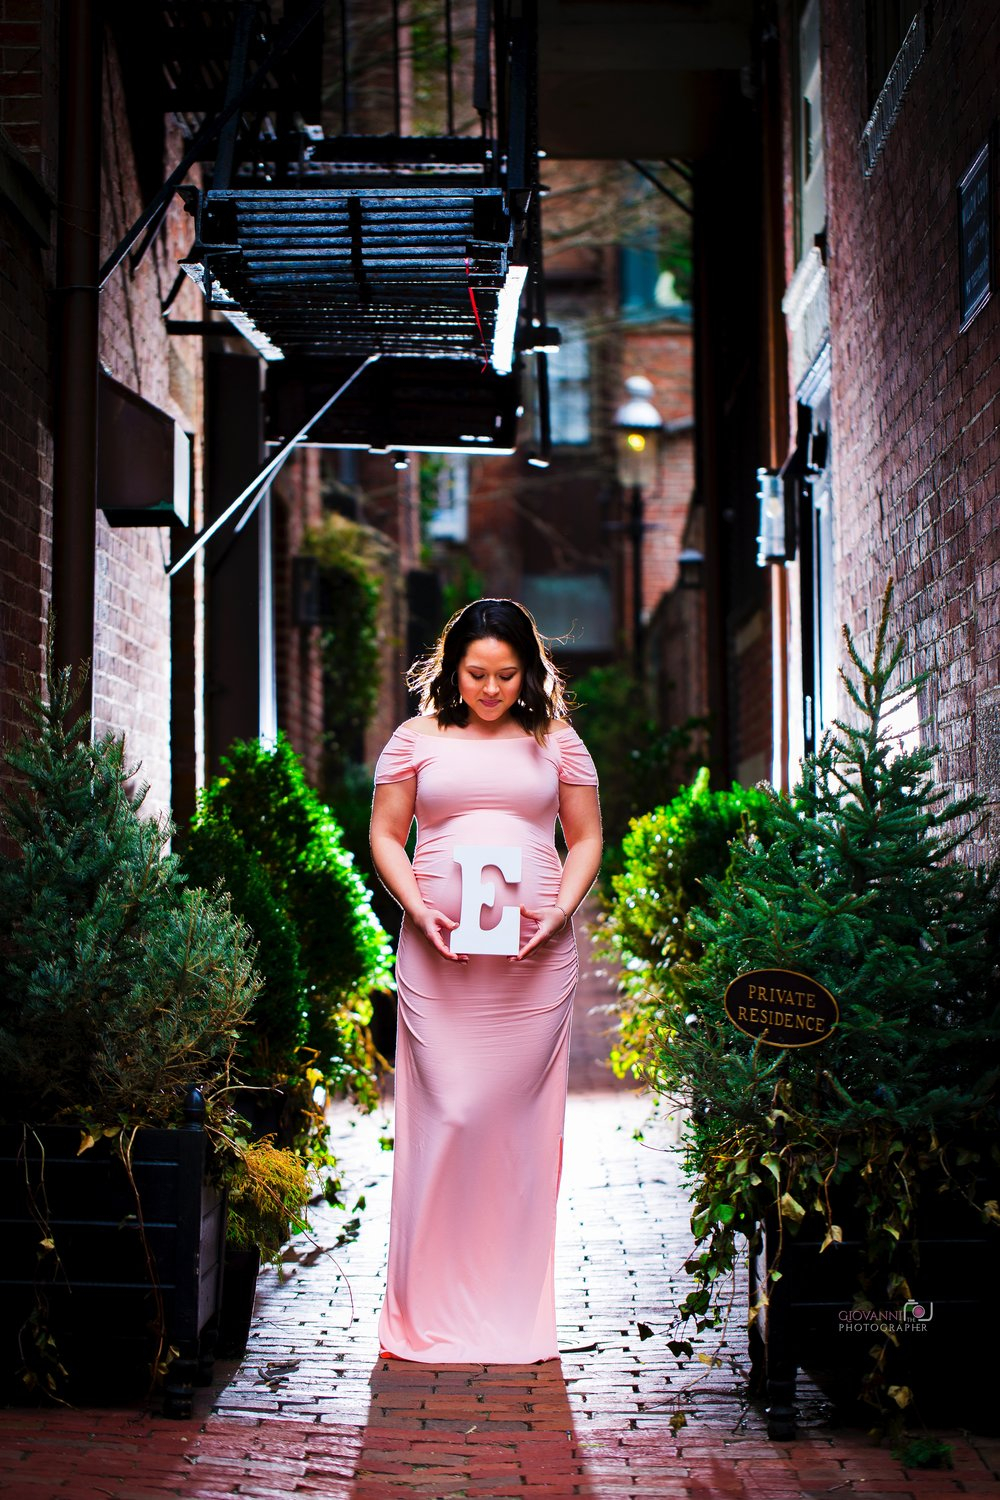 8C2A2457 Giovanni The Photographer Boston Marternity Photography Maryann and Steven - Beacon Hill - Acorn Street Cobblestone St 03-04-18 WM35.jpg